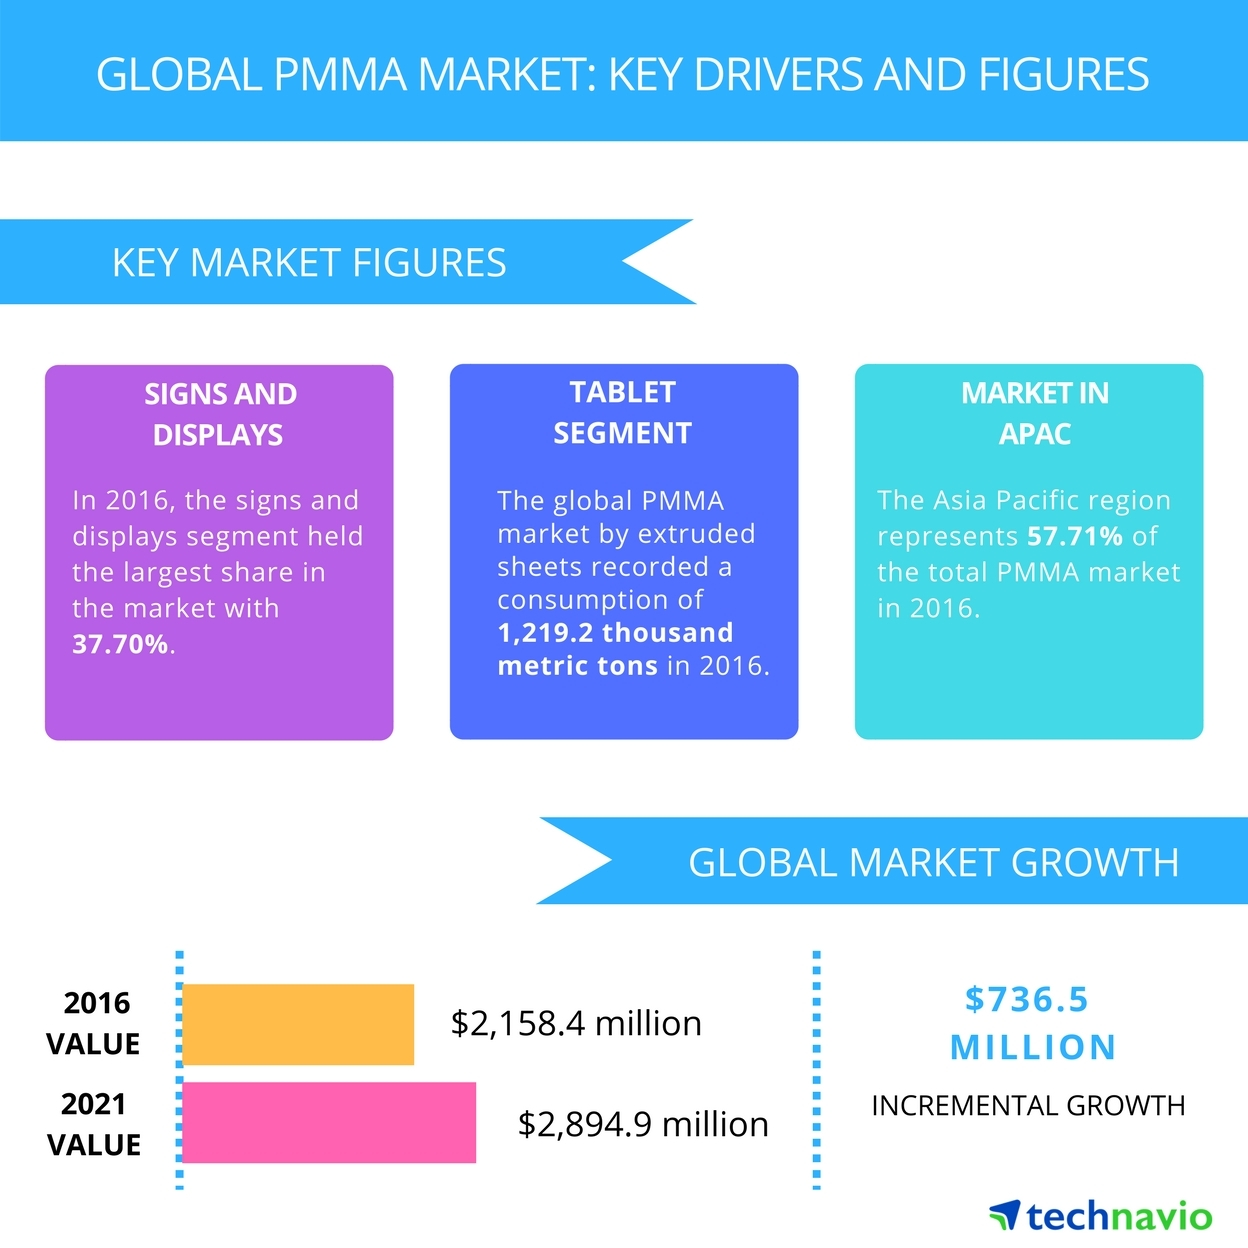 Technavio has published a new report on the global PMMA market from 2017-2021. (Graphic: Business Wire)